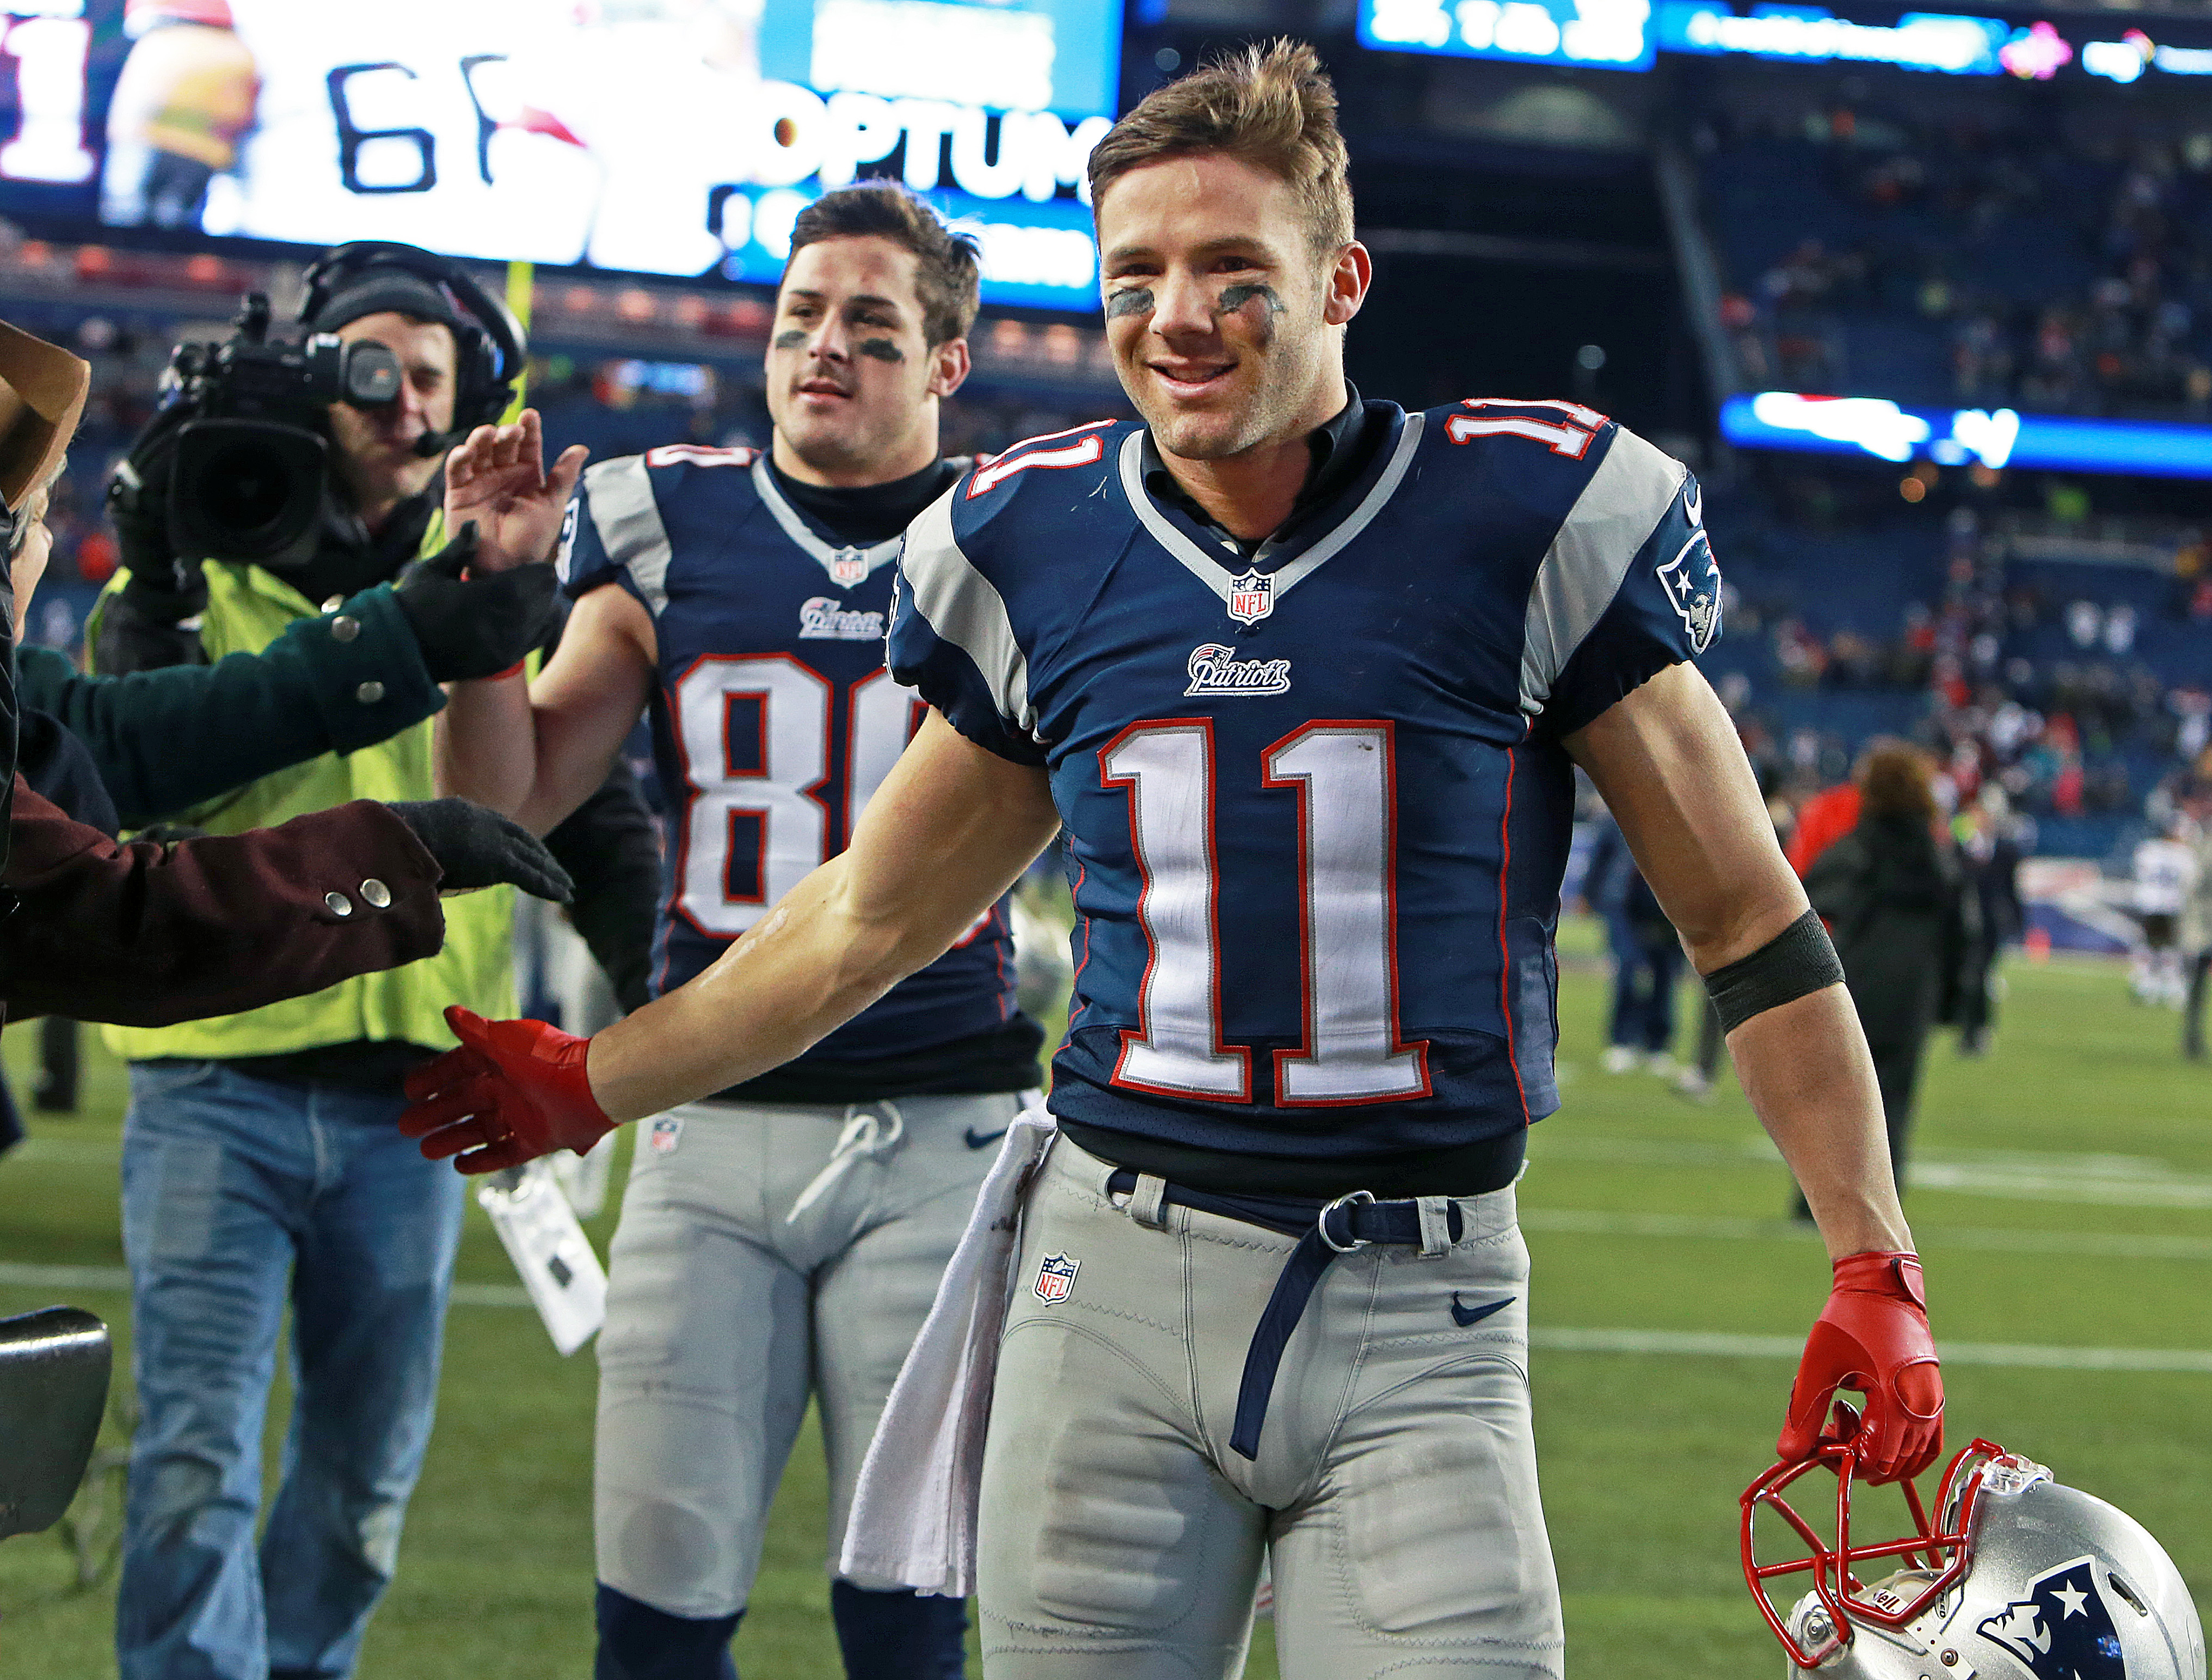 Julian Edelman agrees to deal with Patriots - The Boston Globe